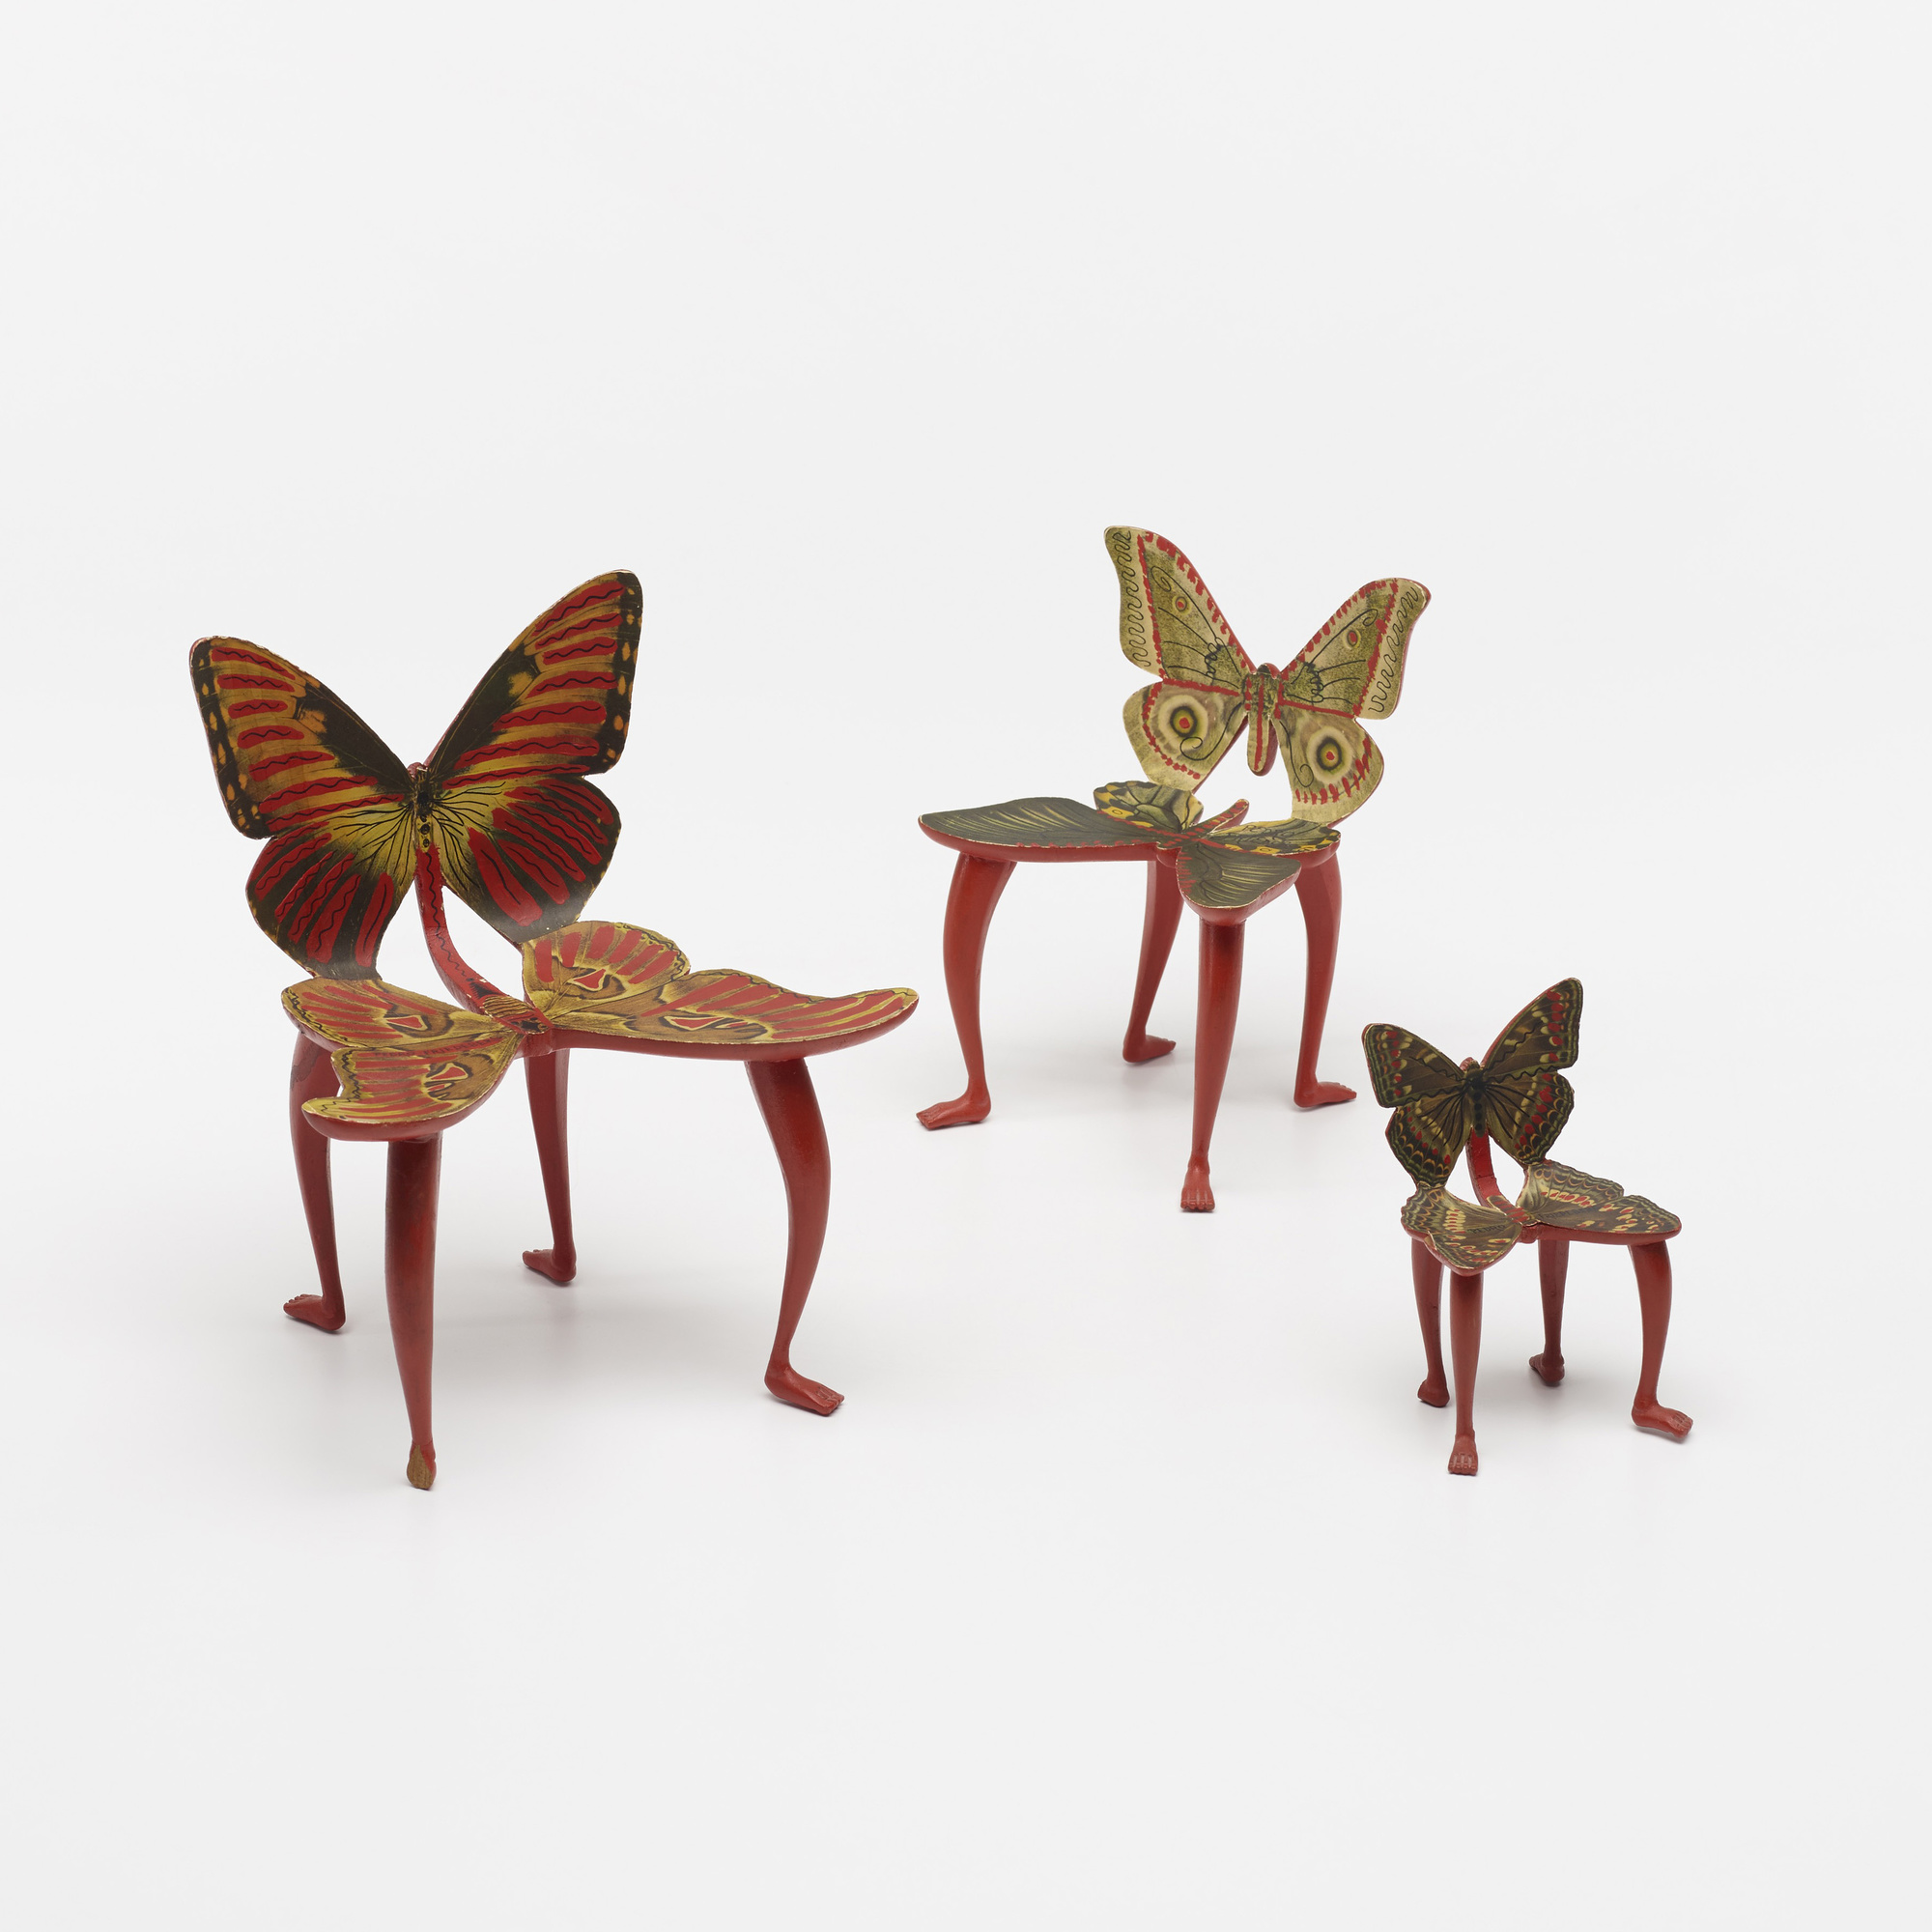 115: Pedro Friedeberg / set of three miniature Butterfly chair models (2 of 3)